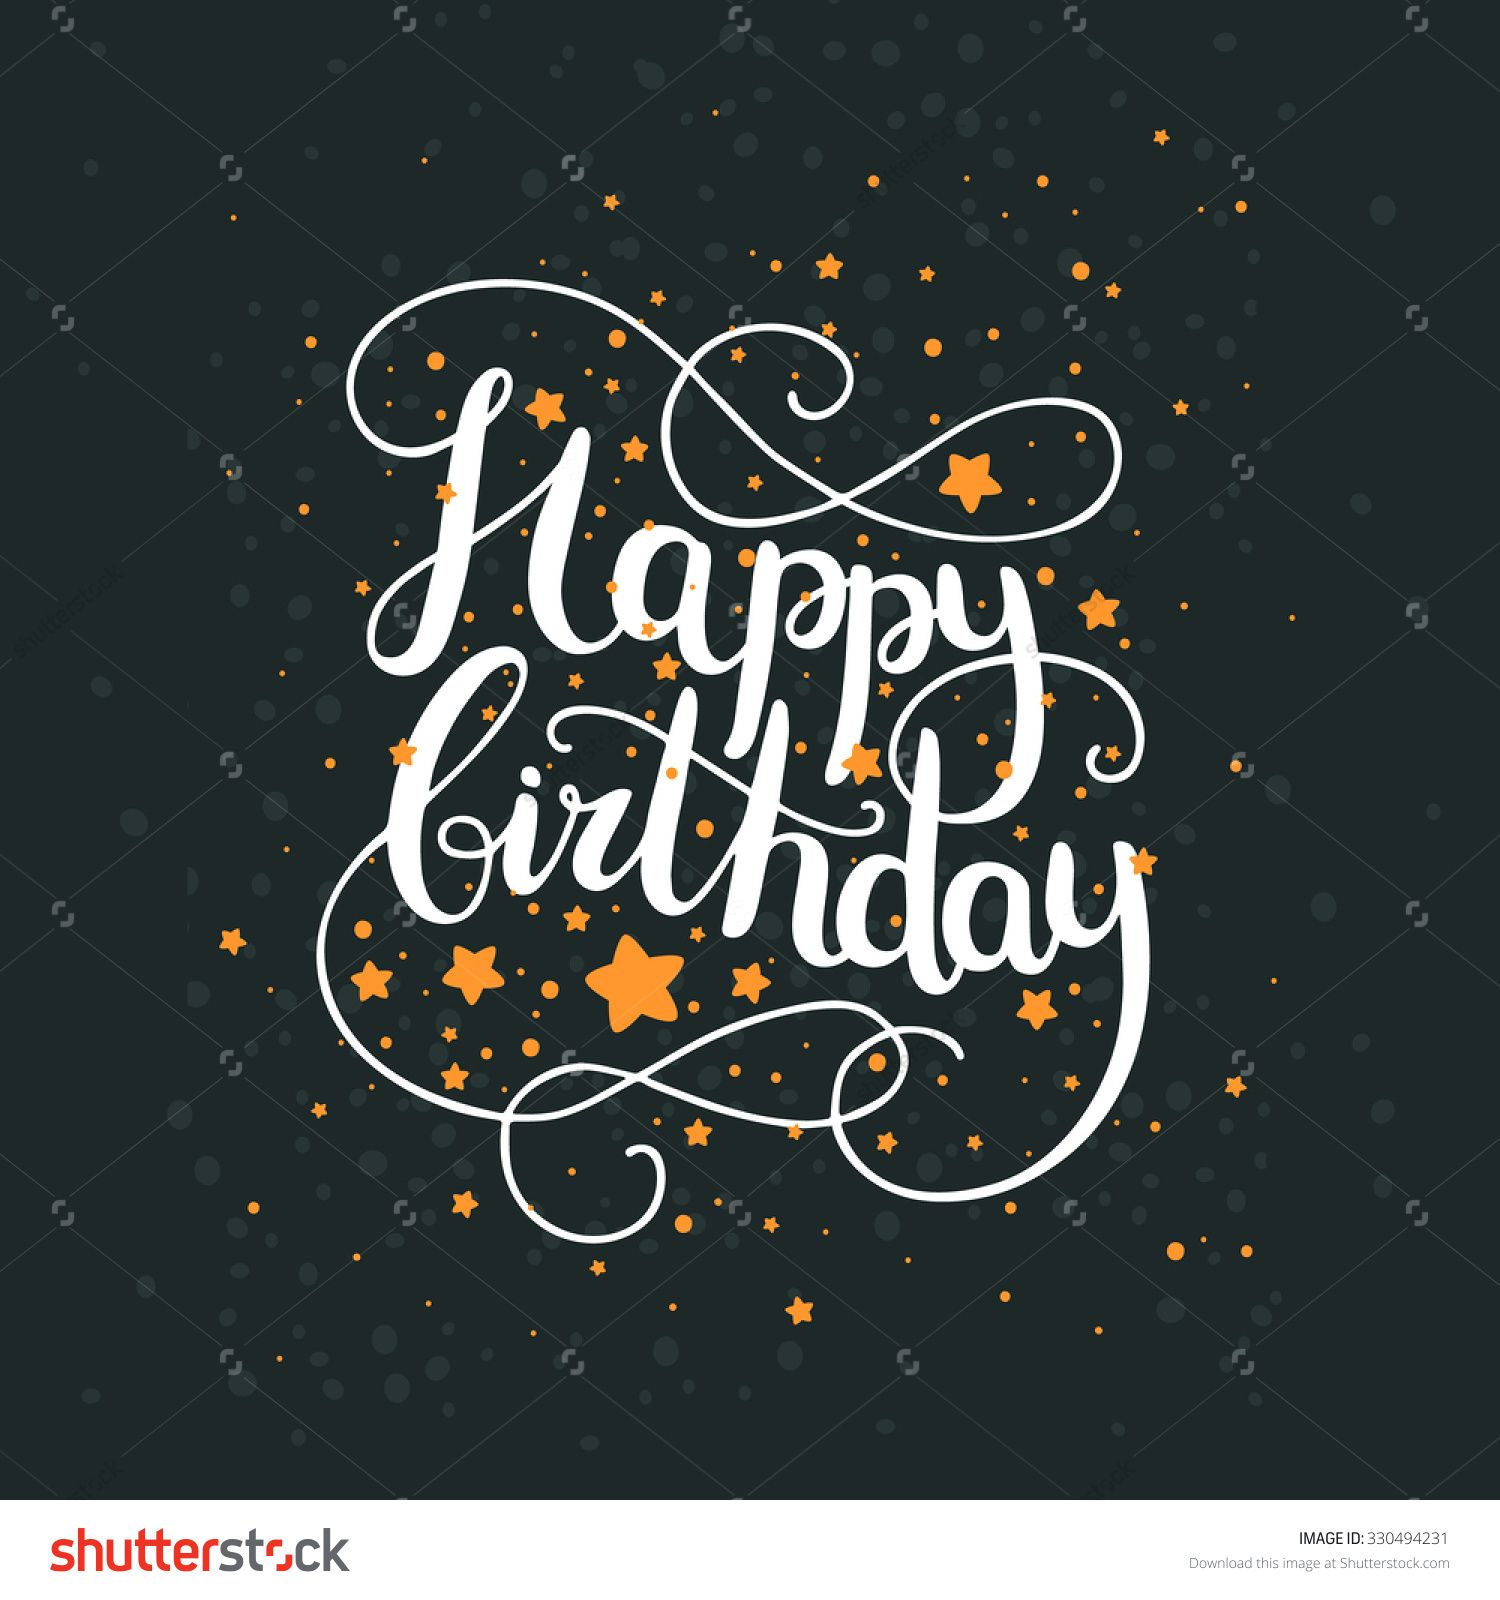 Happy birthday card with hand drawn lettering and space